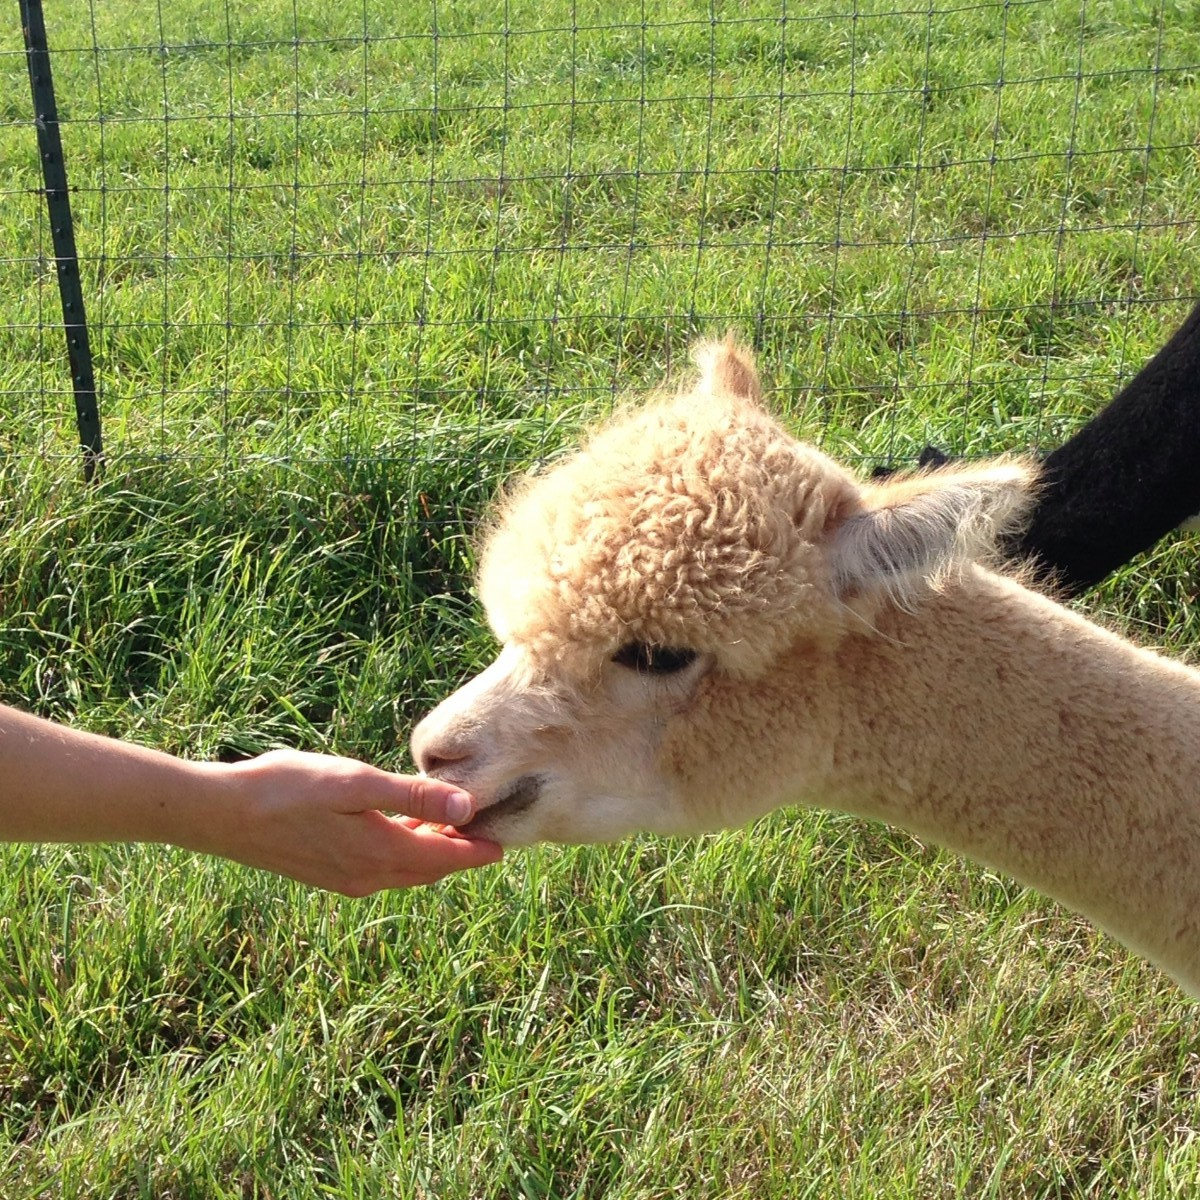 Alpaca Photo 2 Her Heartland Soul Erin Fairchild